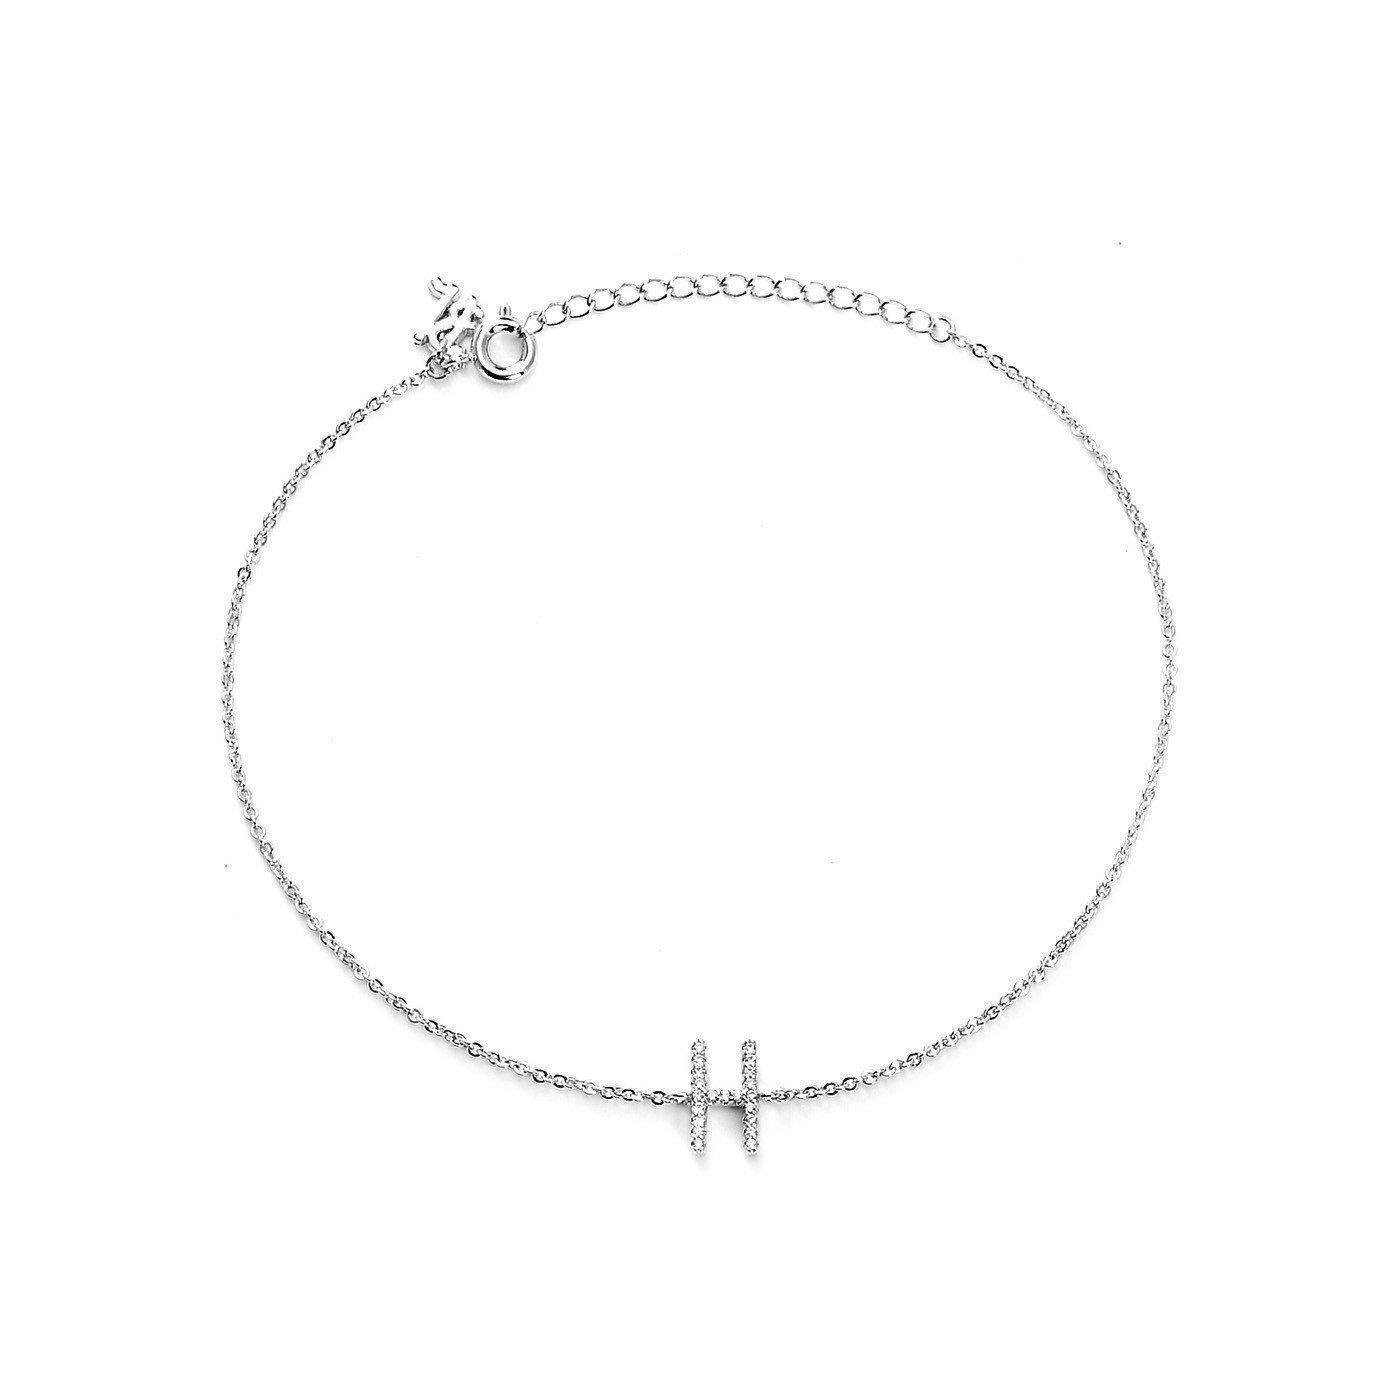 Blinglane Your Initial H Fashion Anklet Jewelry Women